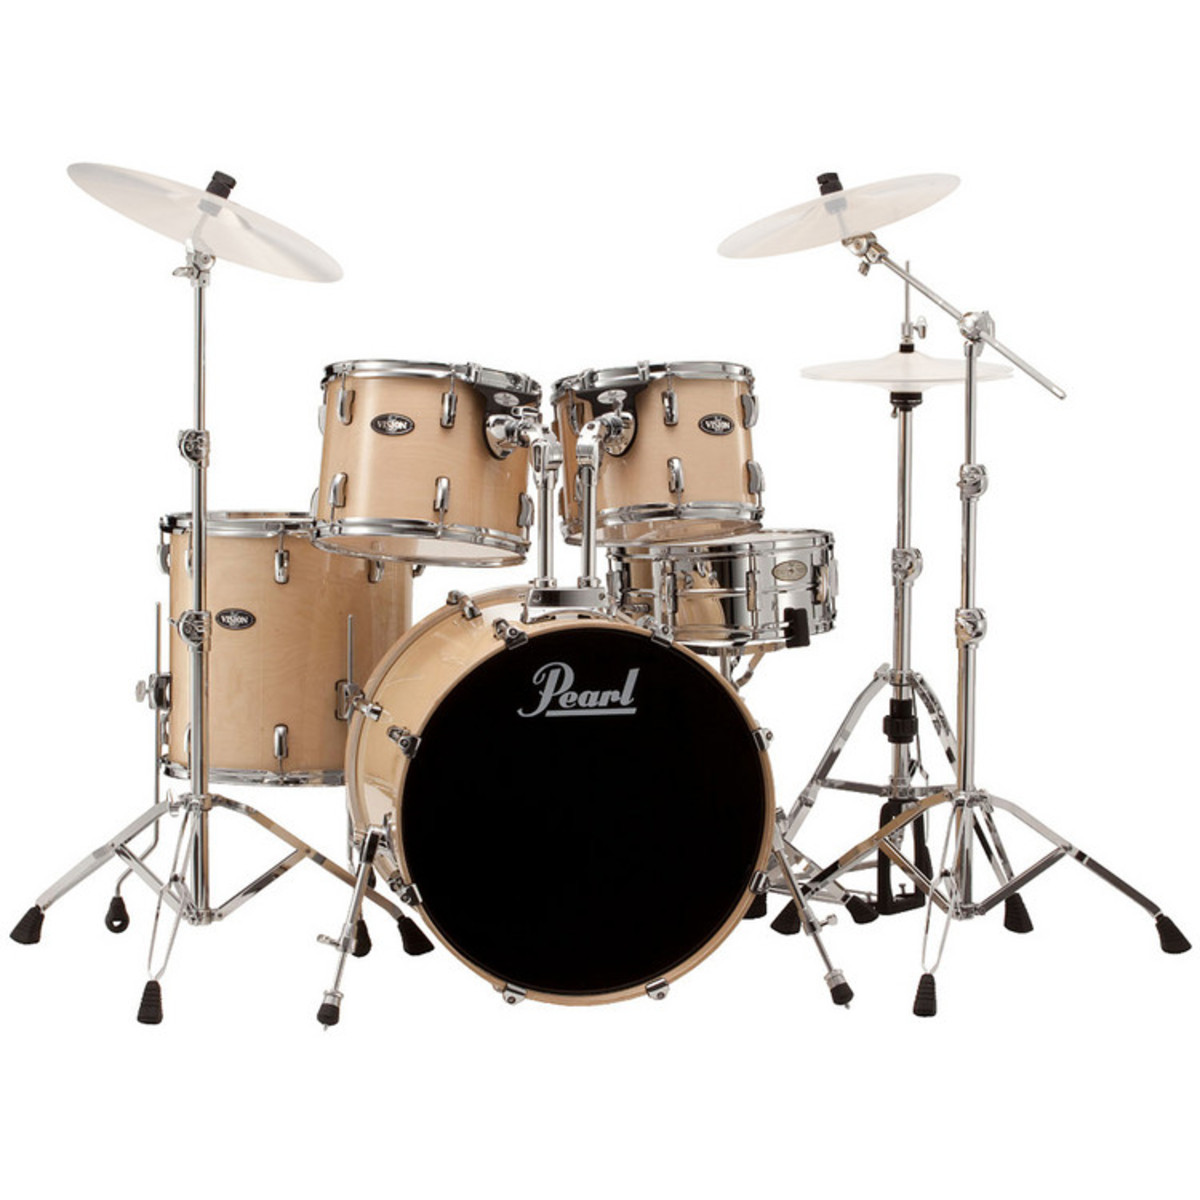 pearl vision birch lacquer vbl 22 39 39 rock drum kit clear birch at gear4music. Black Bedroom Furniture Sets. Home Design Ideas